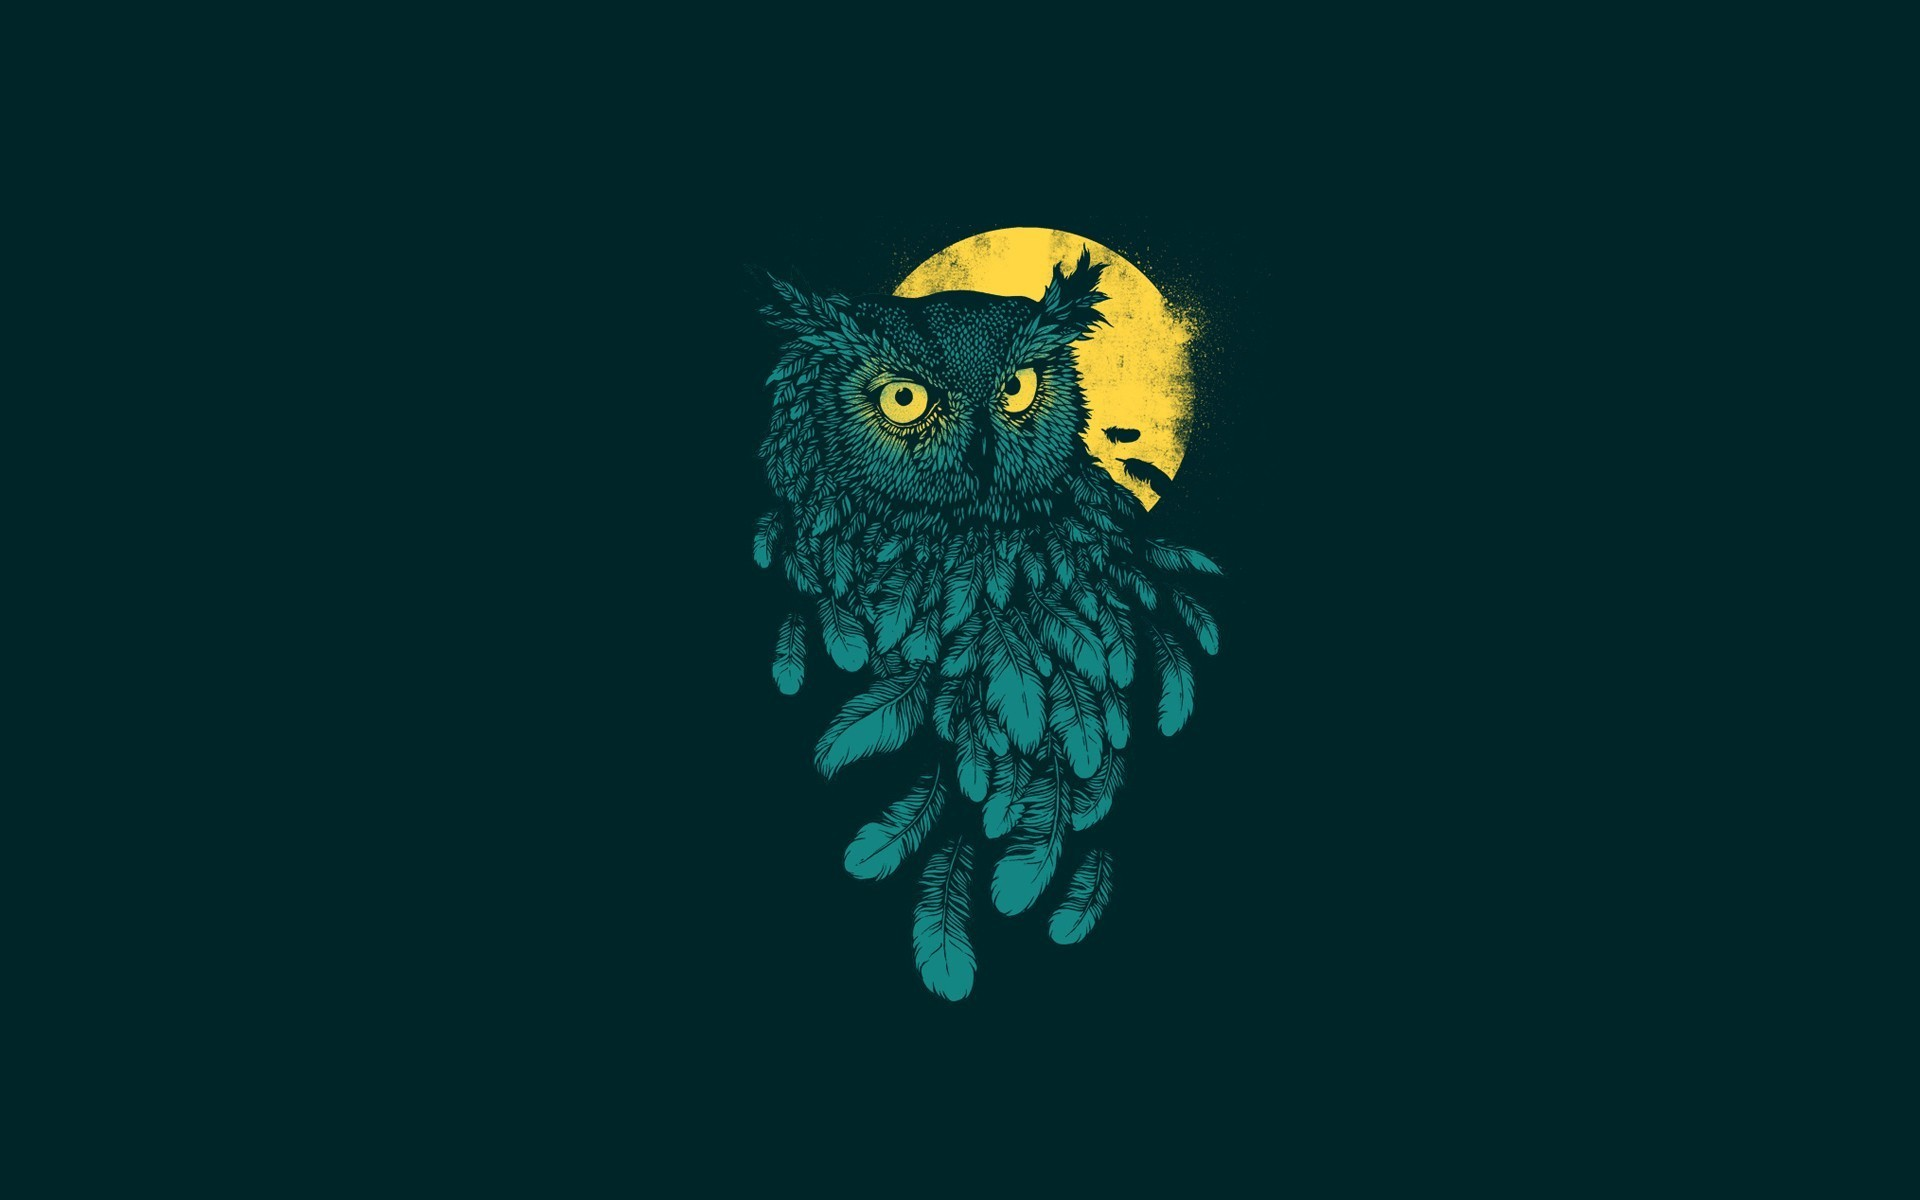 Owl Wallpaper for Computer (76+ pictures)